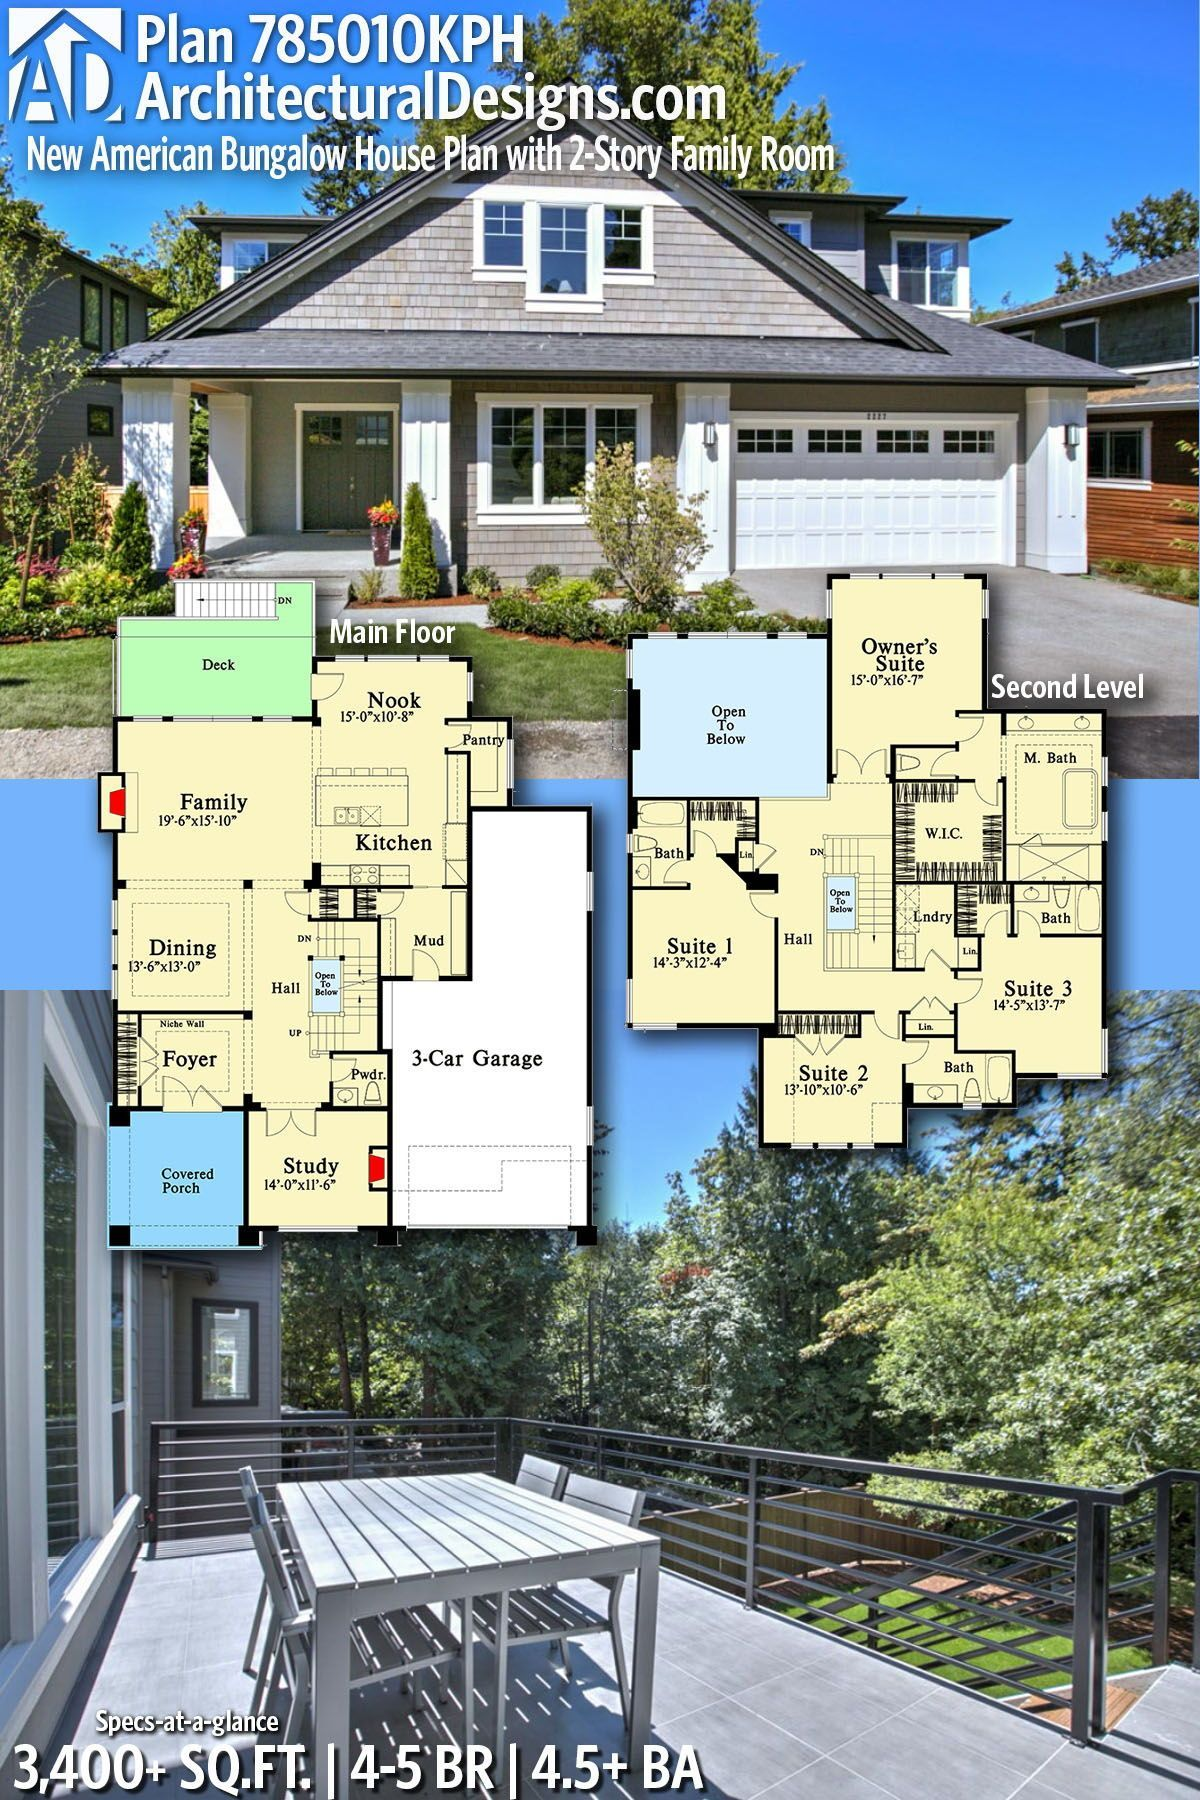 Plan 785010kph New American Bungalow House Plan With 2 Story Family Room Bungalow Style House Plans House Plans Bungalow House Plans